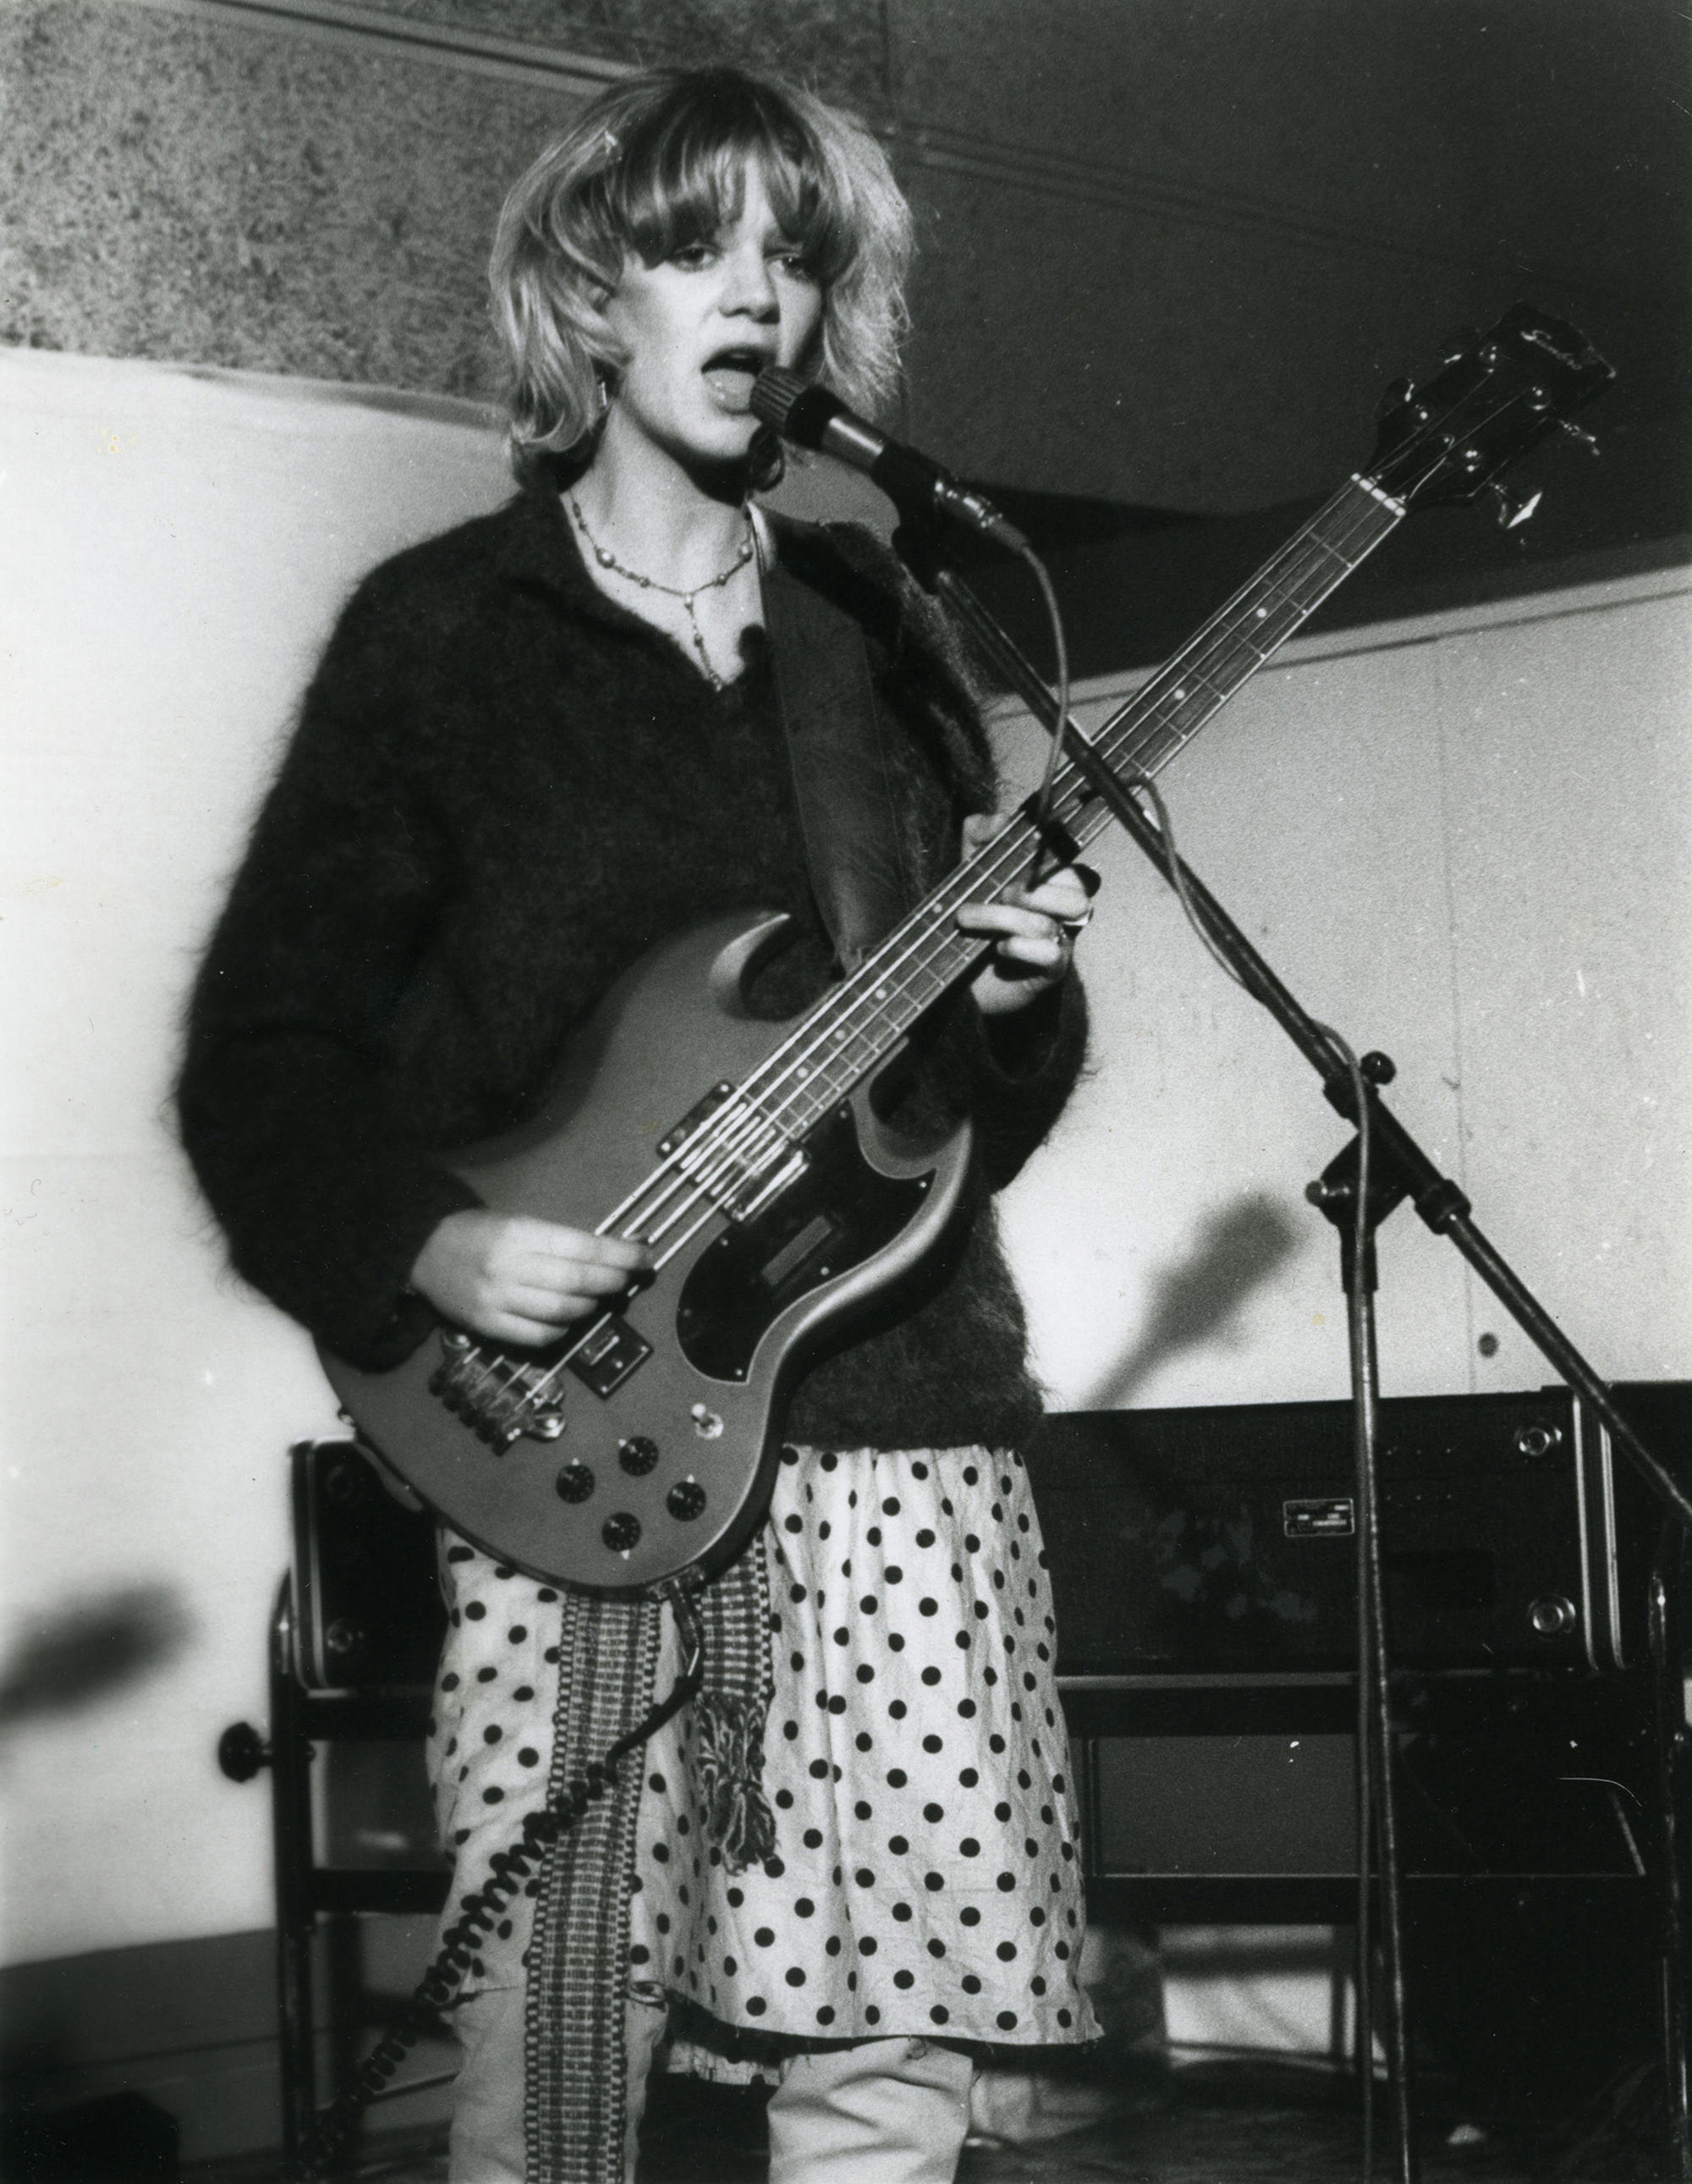 Gina Birch of The Raincoats shot by Shirley O'Loughlin (1979) - Image courtesy of Shirley O'Loughlin for Homesick Magazine Issue #3   www.theraincoats.net